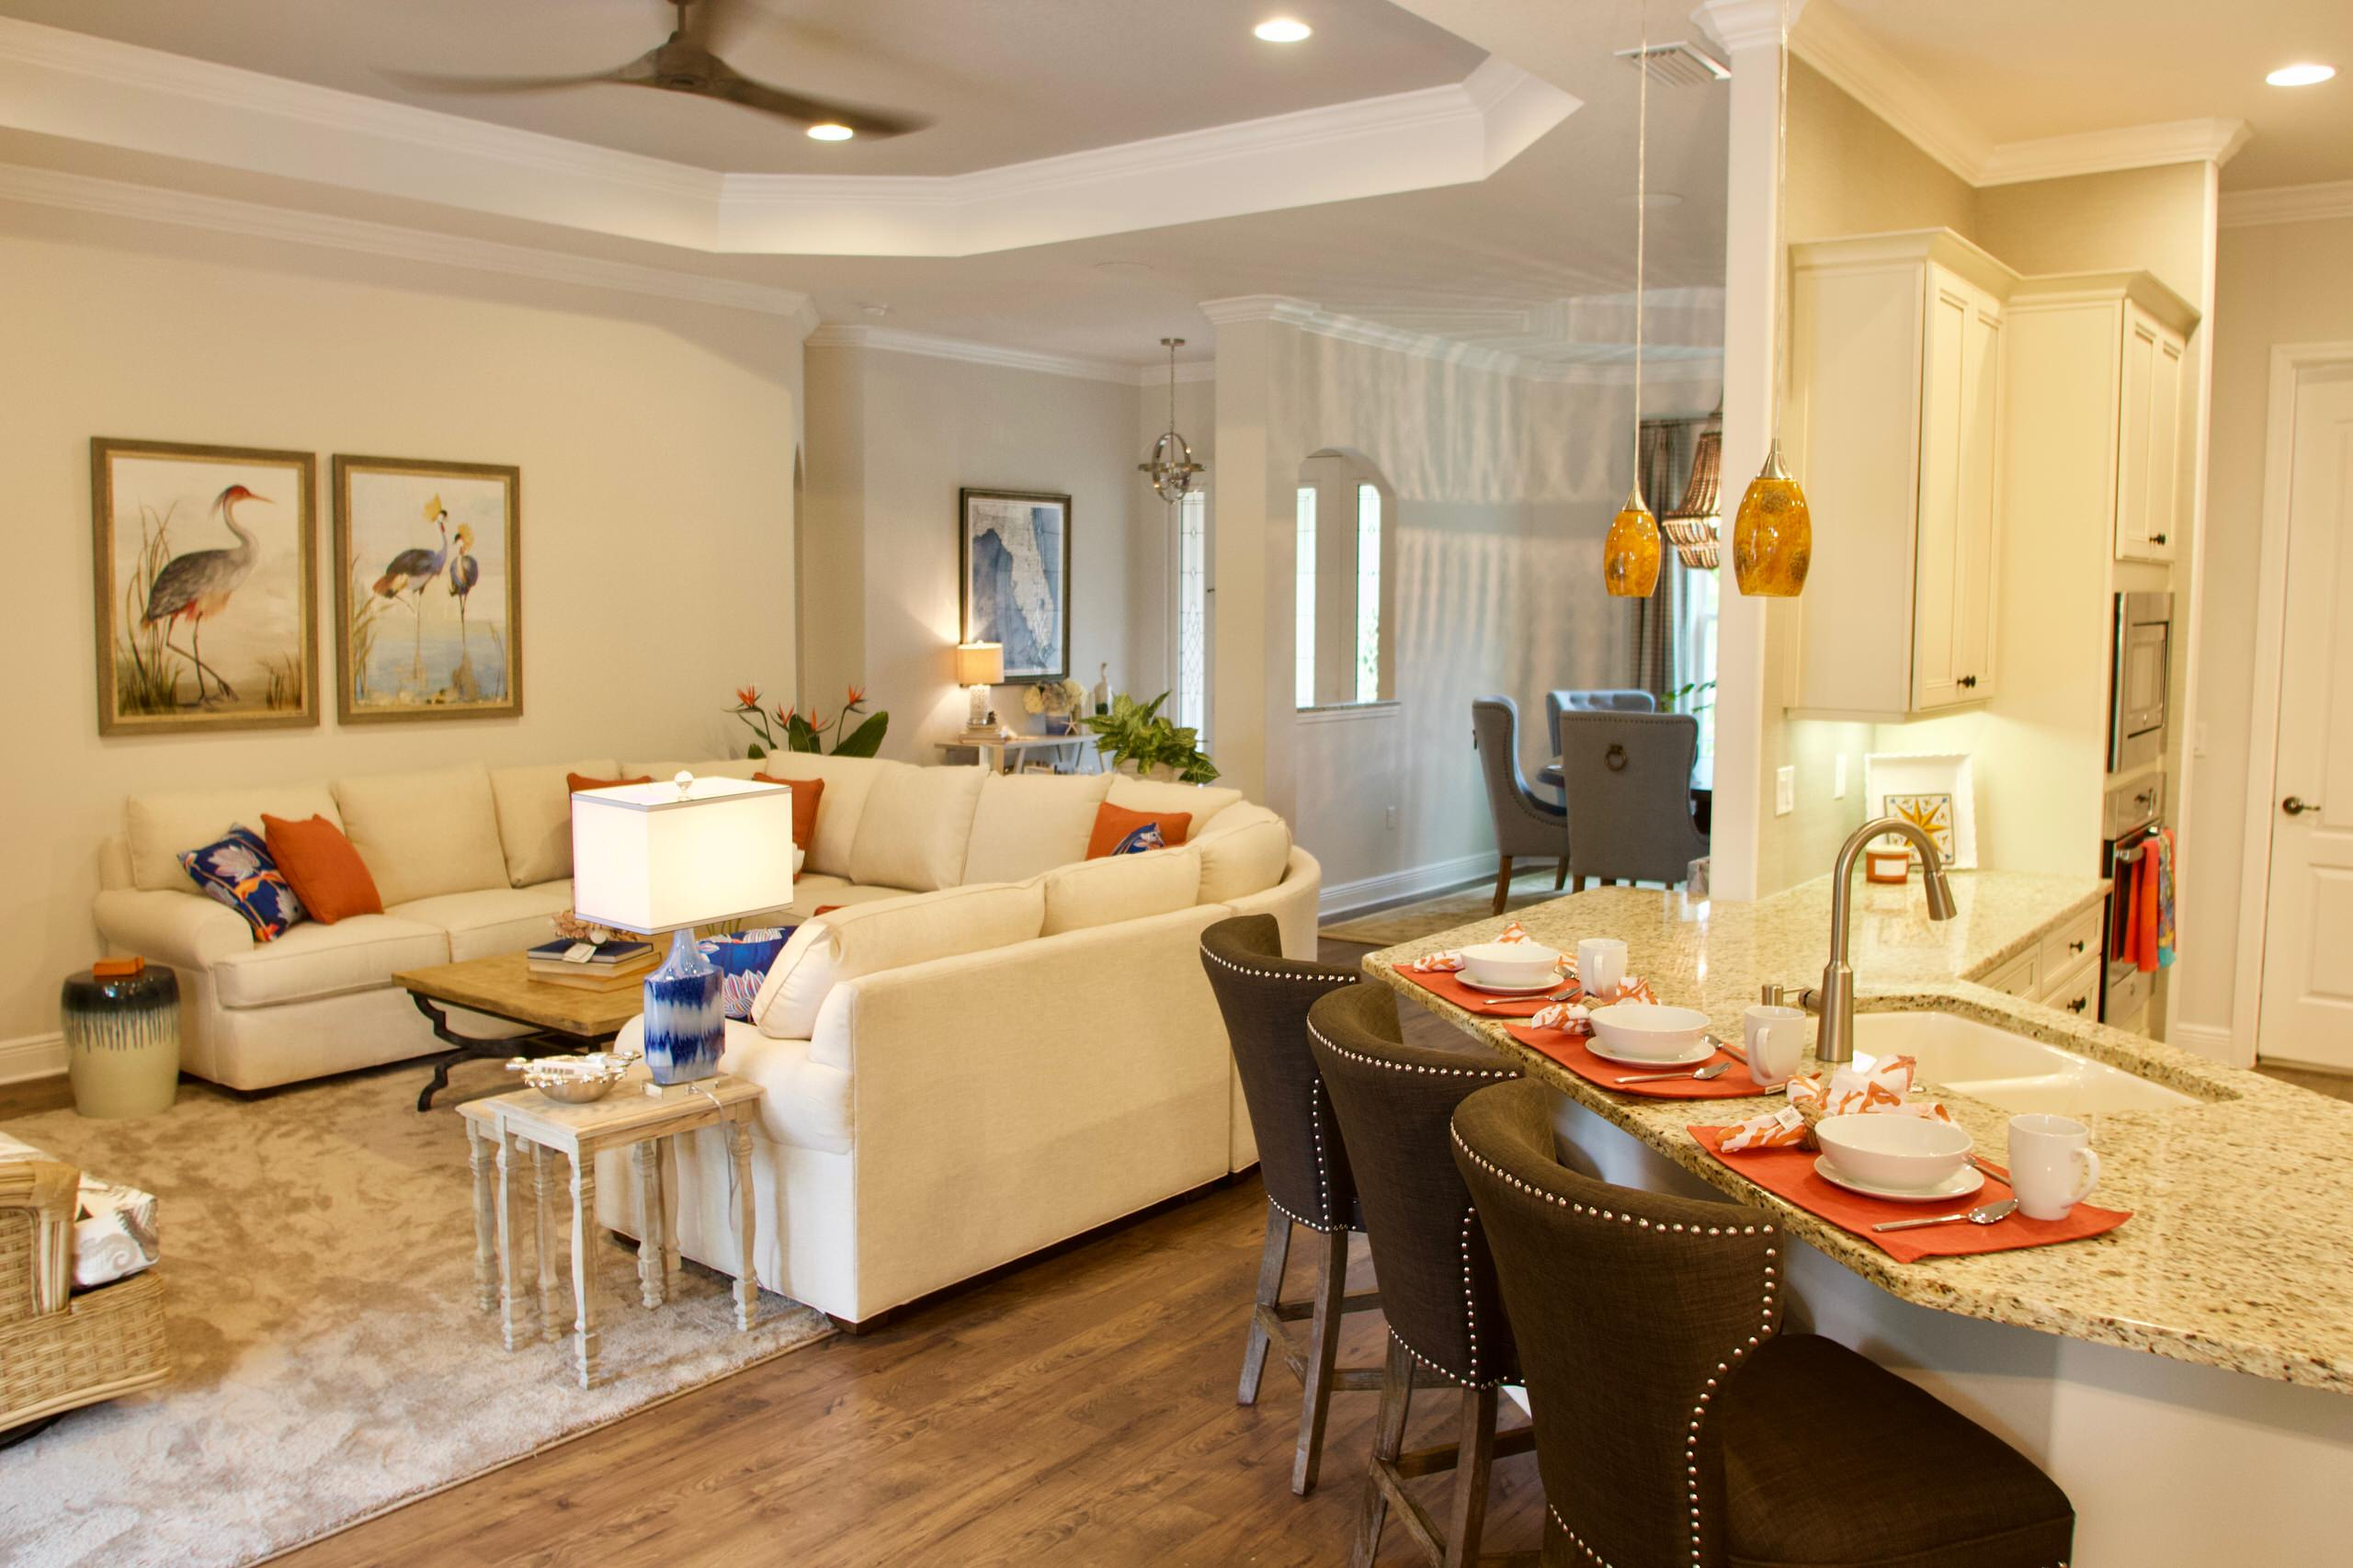 Living Large in Small Spaces, Indian River Shores, FL